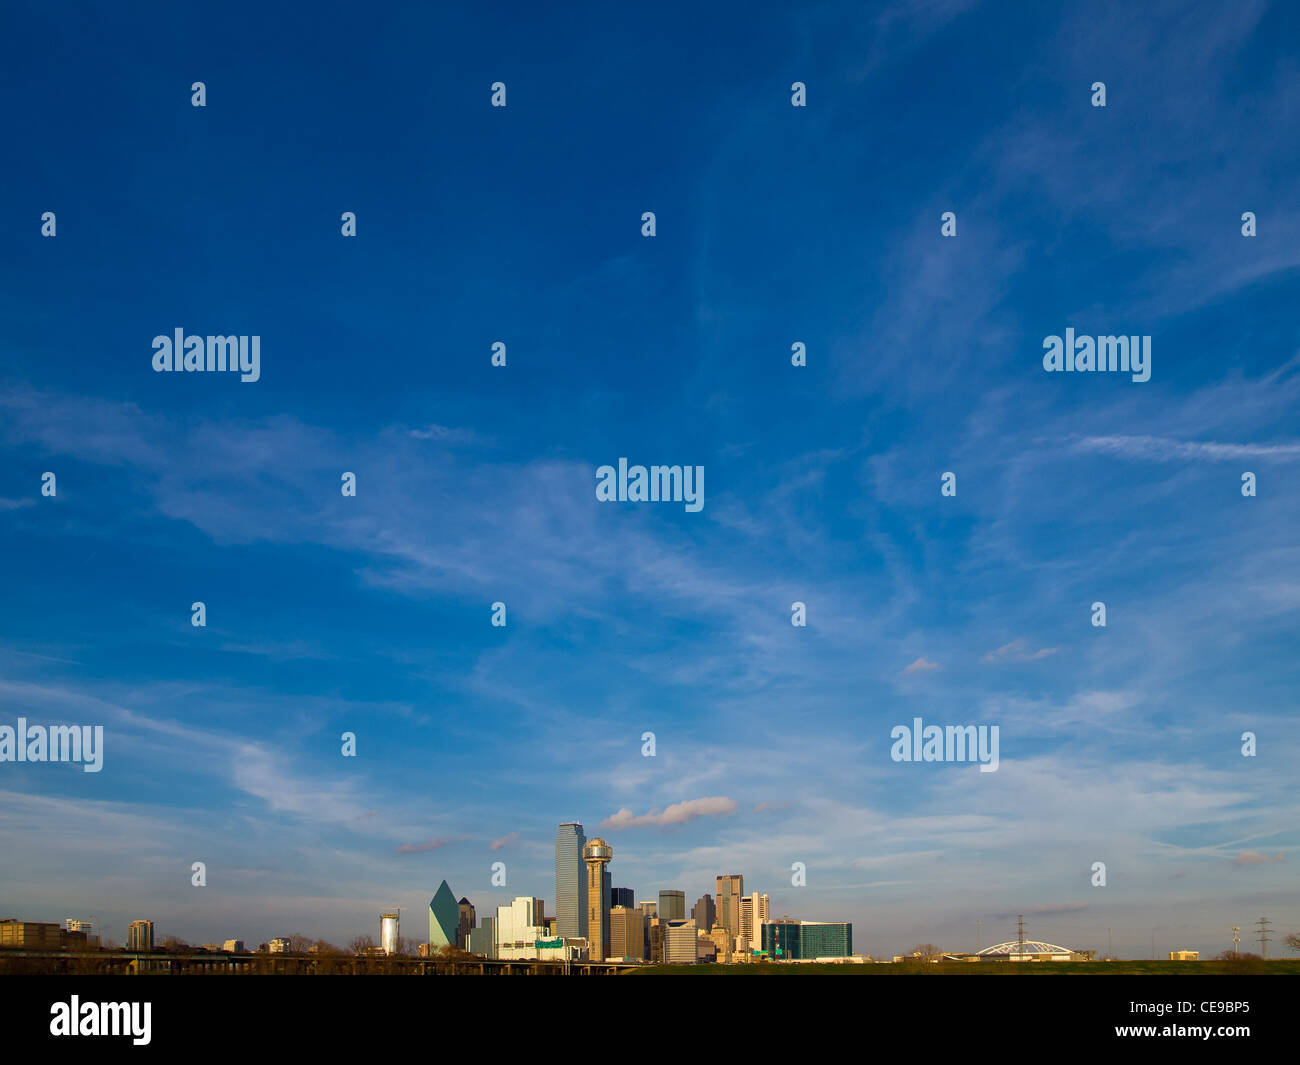 The Dallas, Texas skyline with beautiful blue sky and clouds. - Stock Image